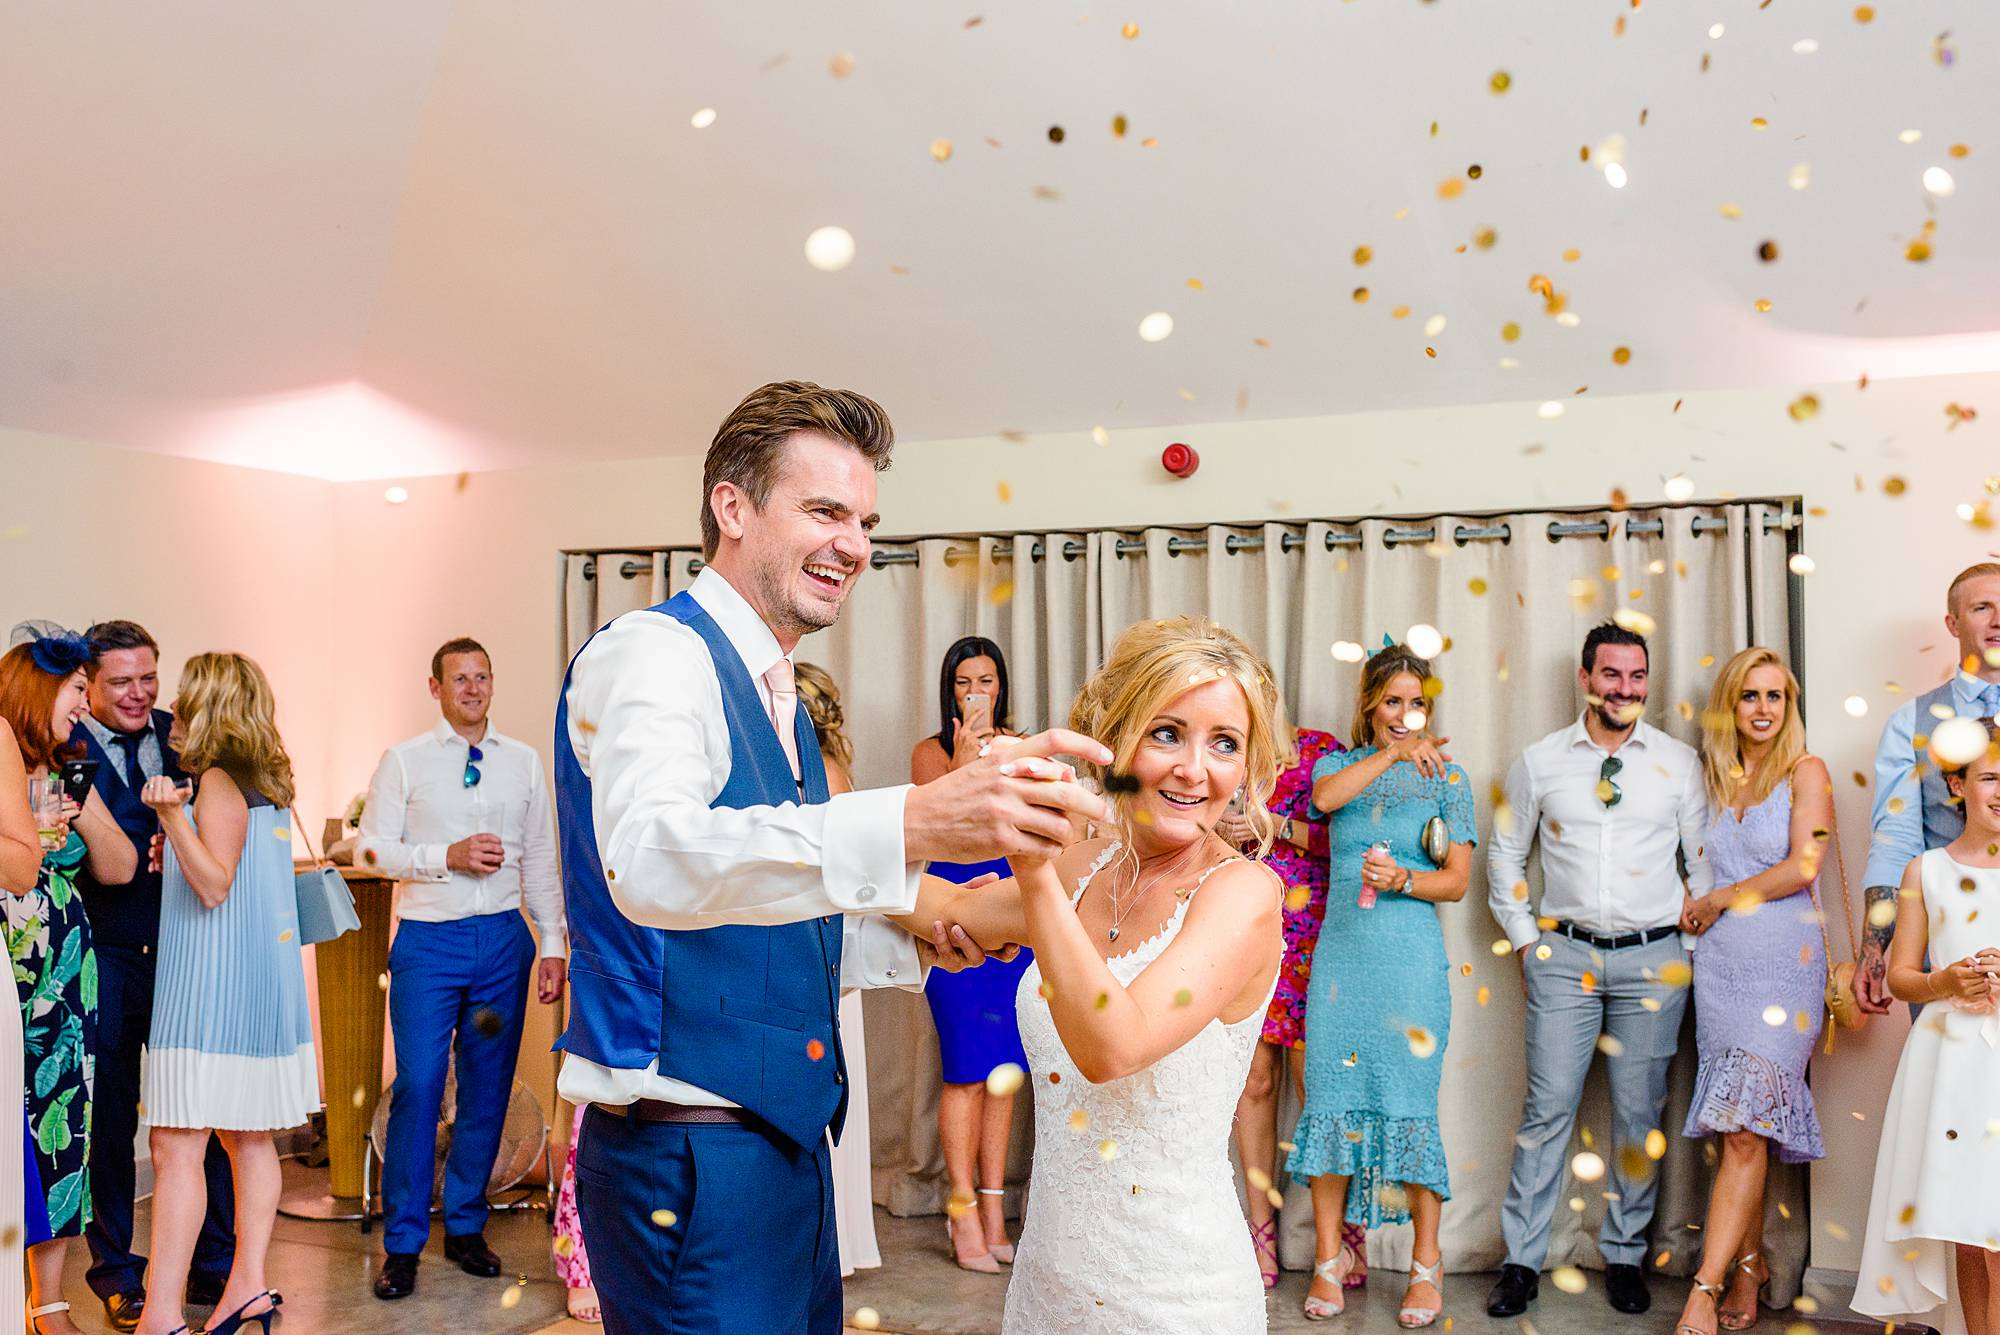 Houchins Essex Wedding Photographer_0110.jpg